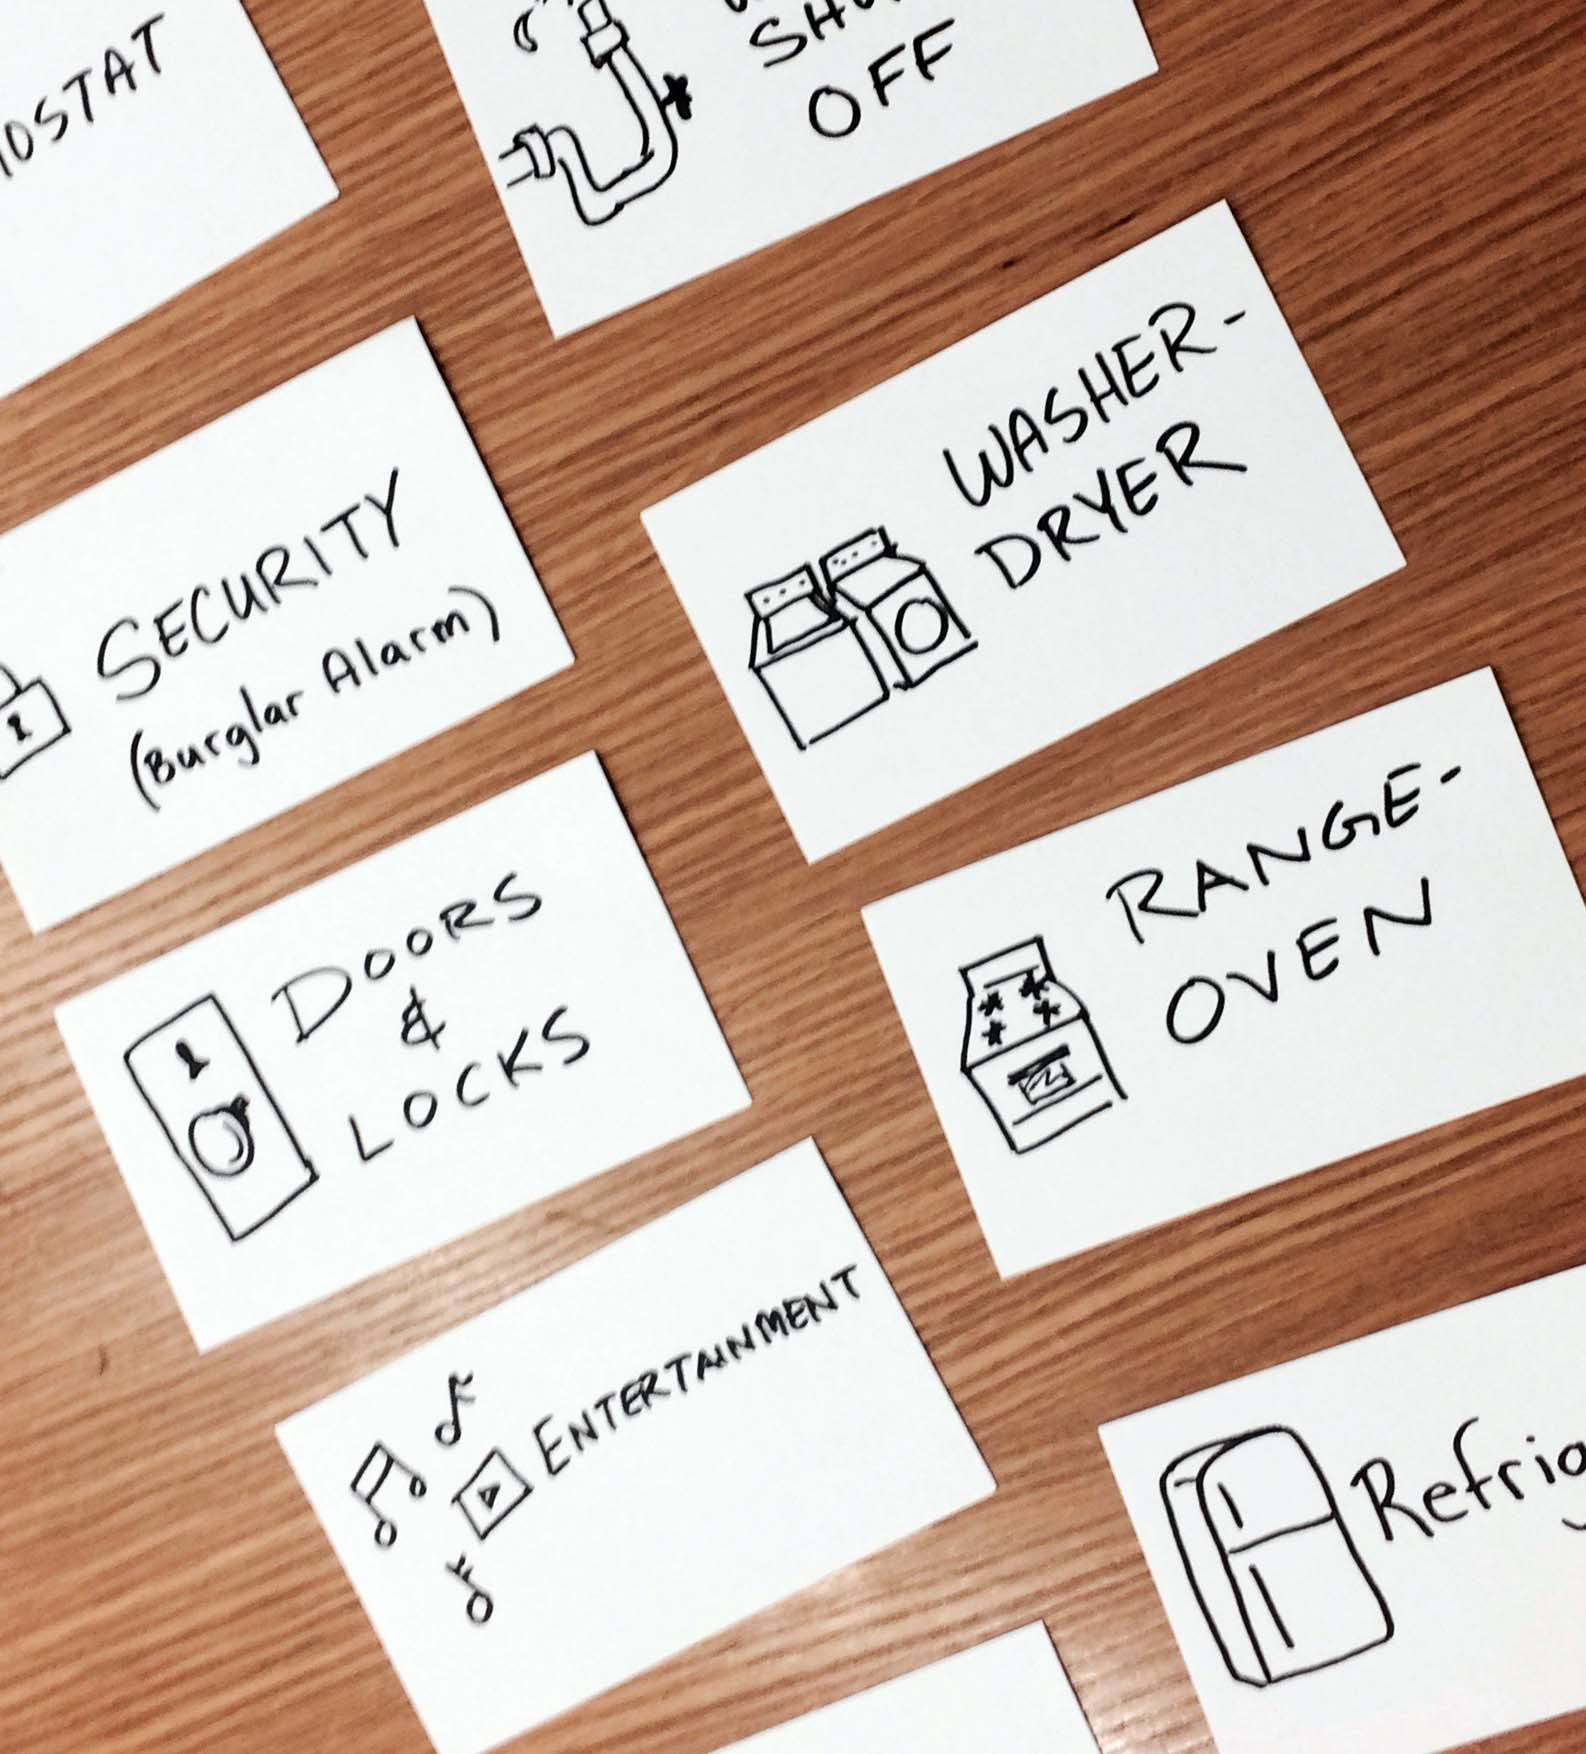 Smart home device cards for card sort